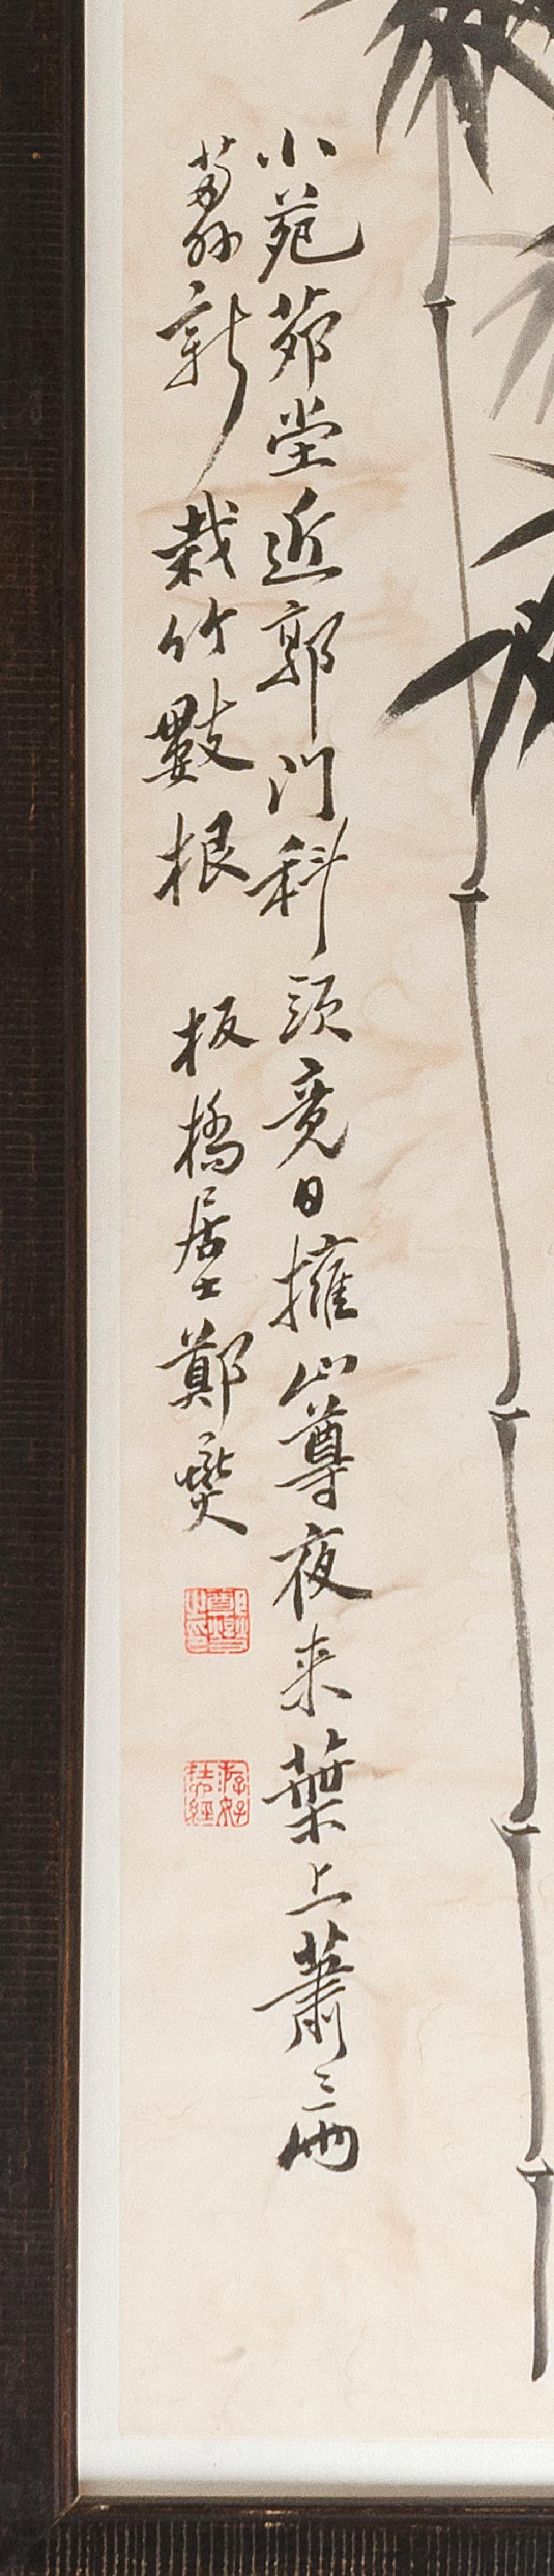 "Lot 1058: CHINESE PAINTING ON PAPER Depicting bamboo. Marked with calligraphy and two seal marks. 53.5"" x 13.5"". Framed."